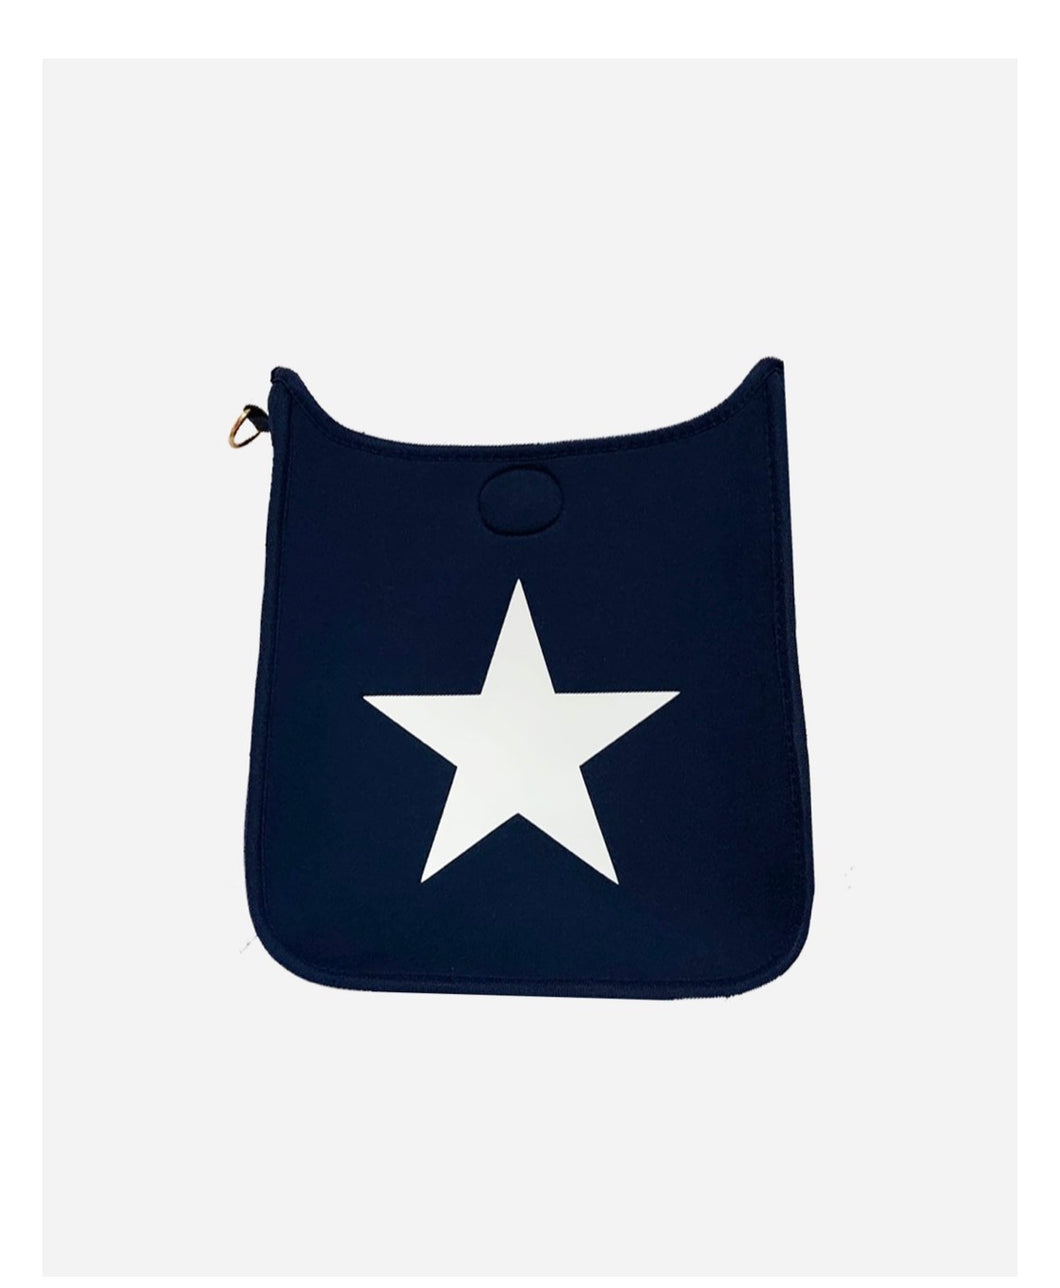 Navy Neoprene Messenger w/ White Star - NO STRAP ATTACHED